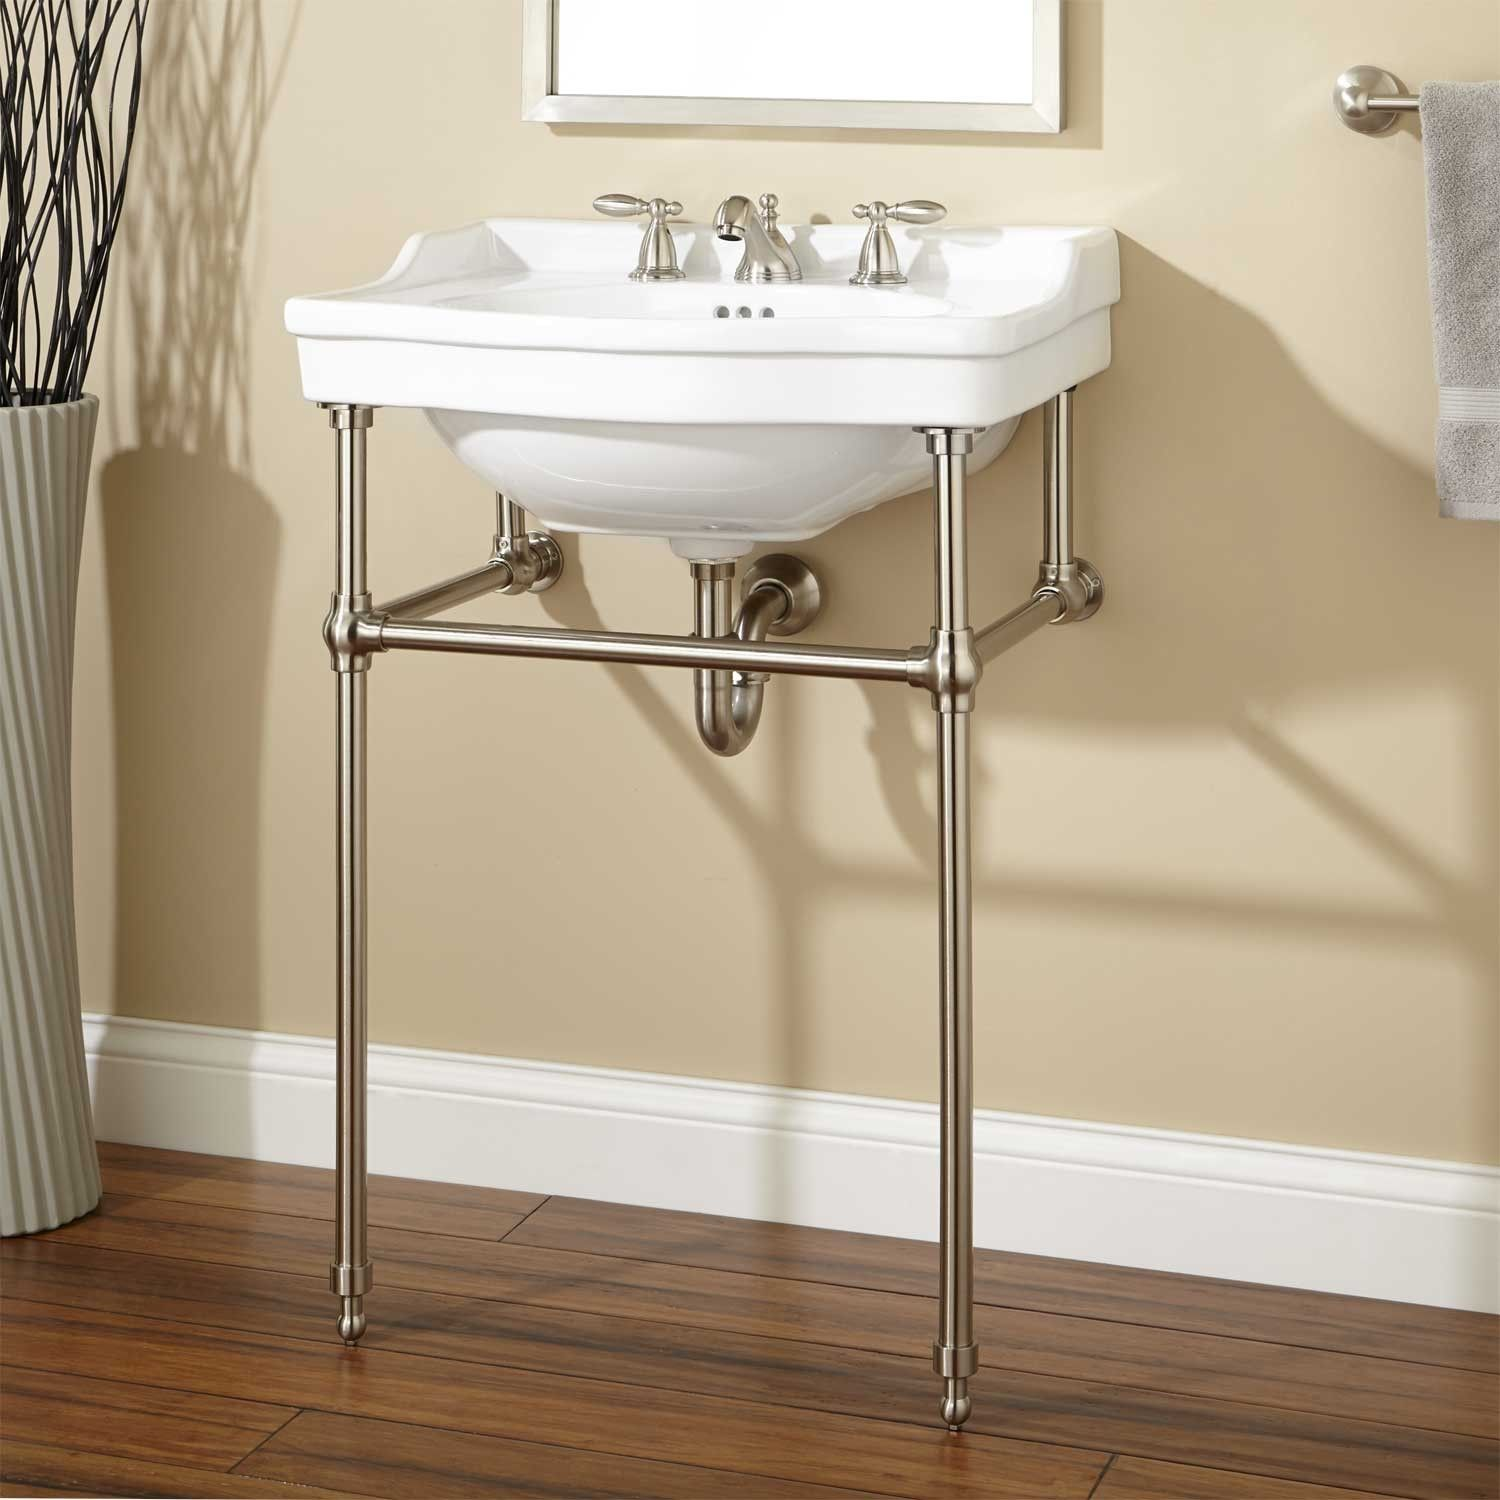 Cierra Console Sink with Brass Stand | Consoles, Sinks and Faucet